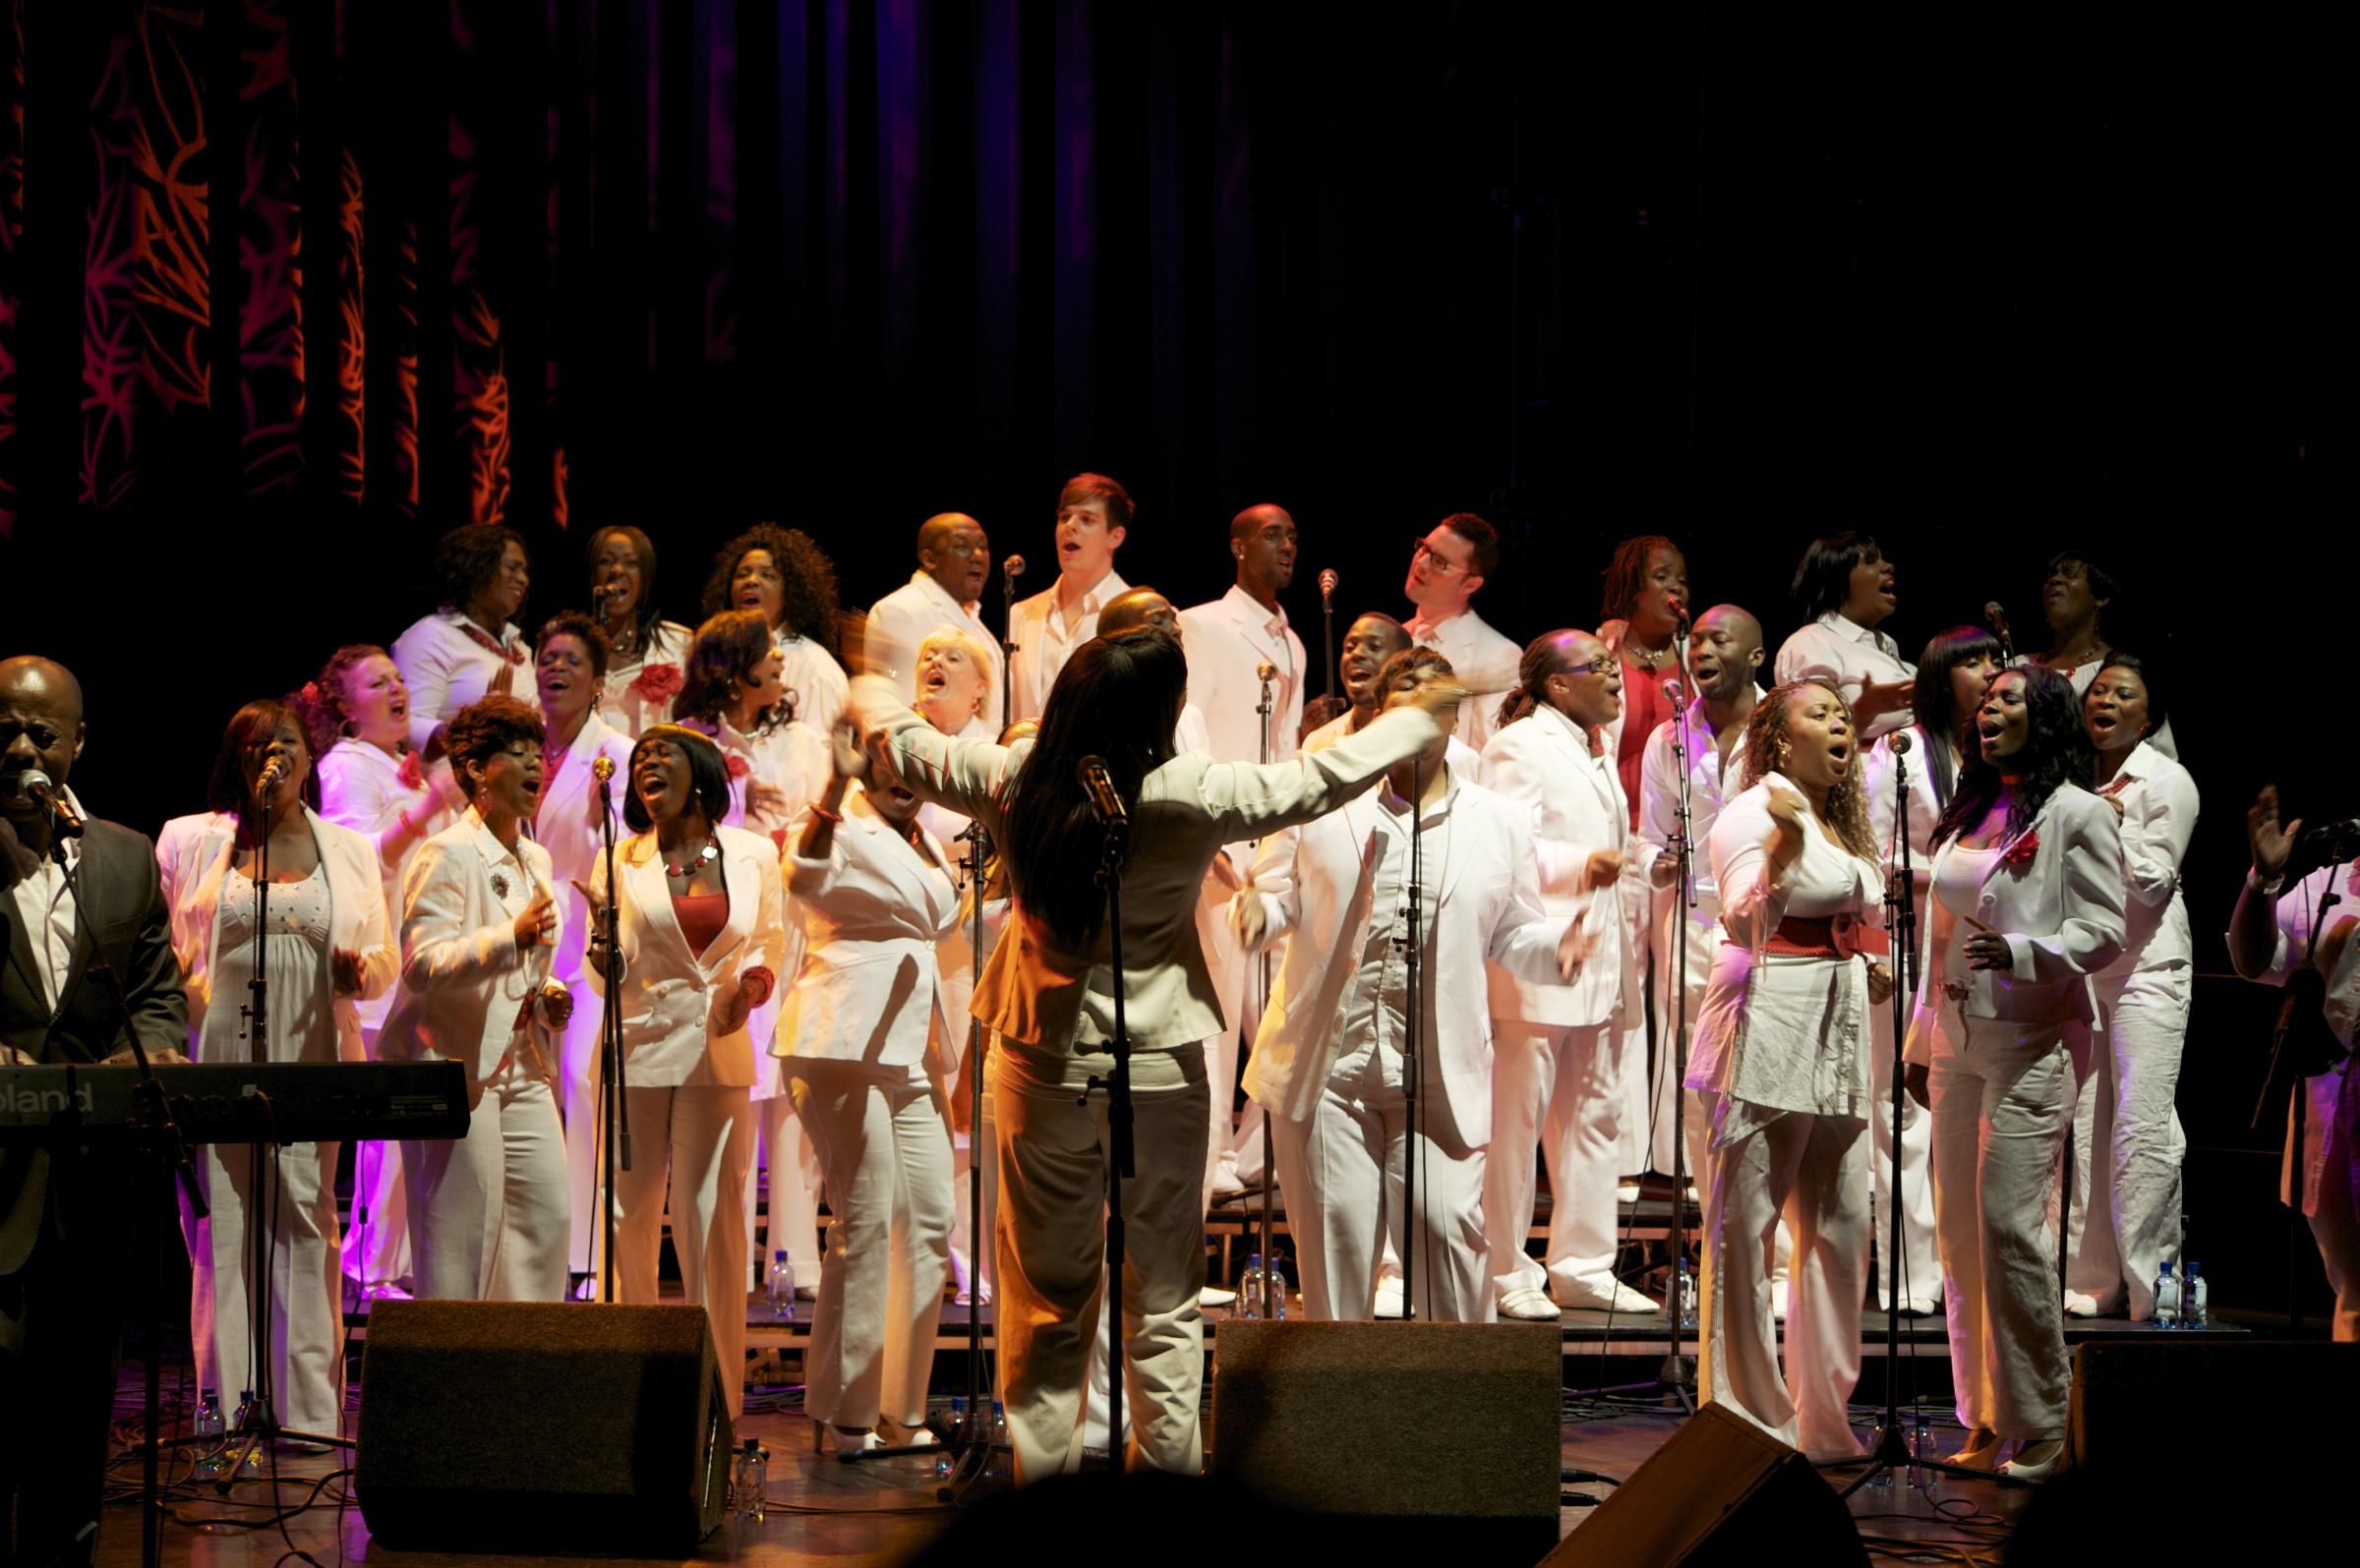 LONDON COMMUNITY GOSPEL CHOIR 'IN FLIGHT'